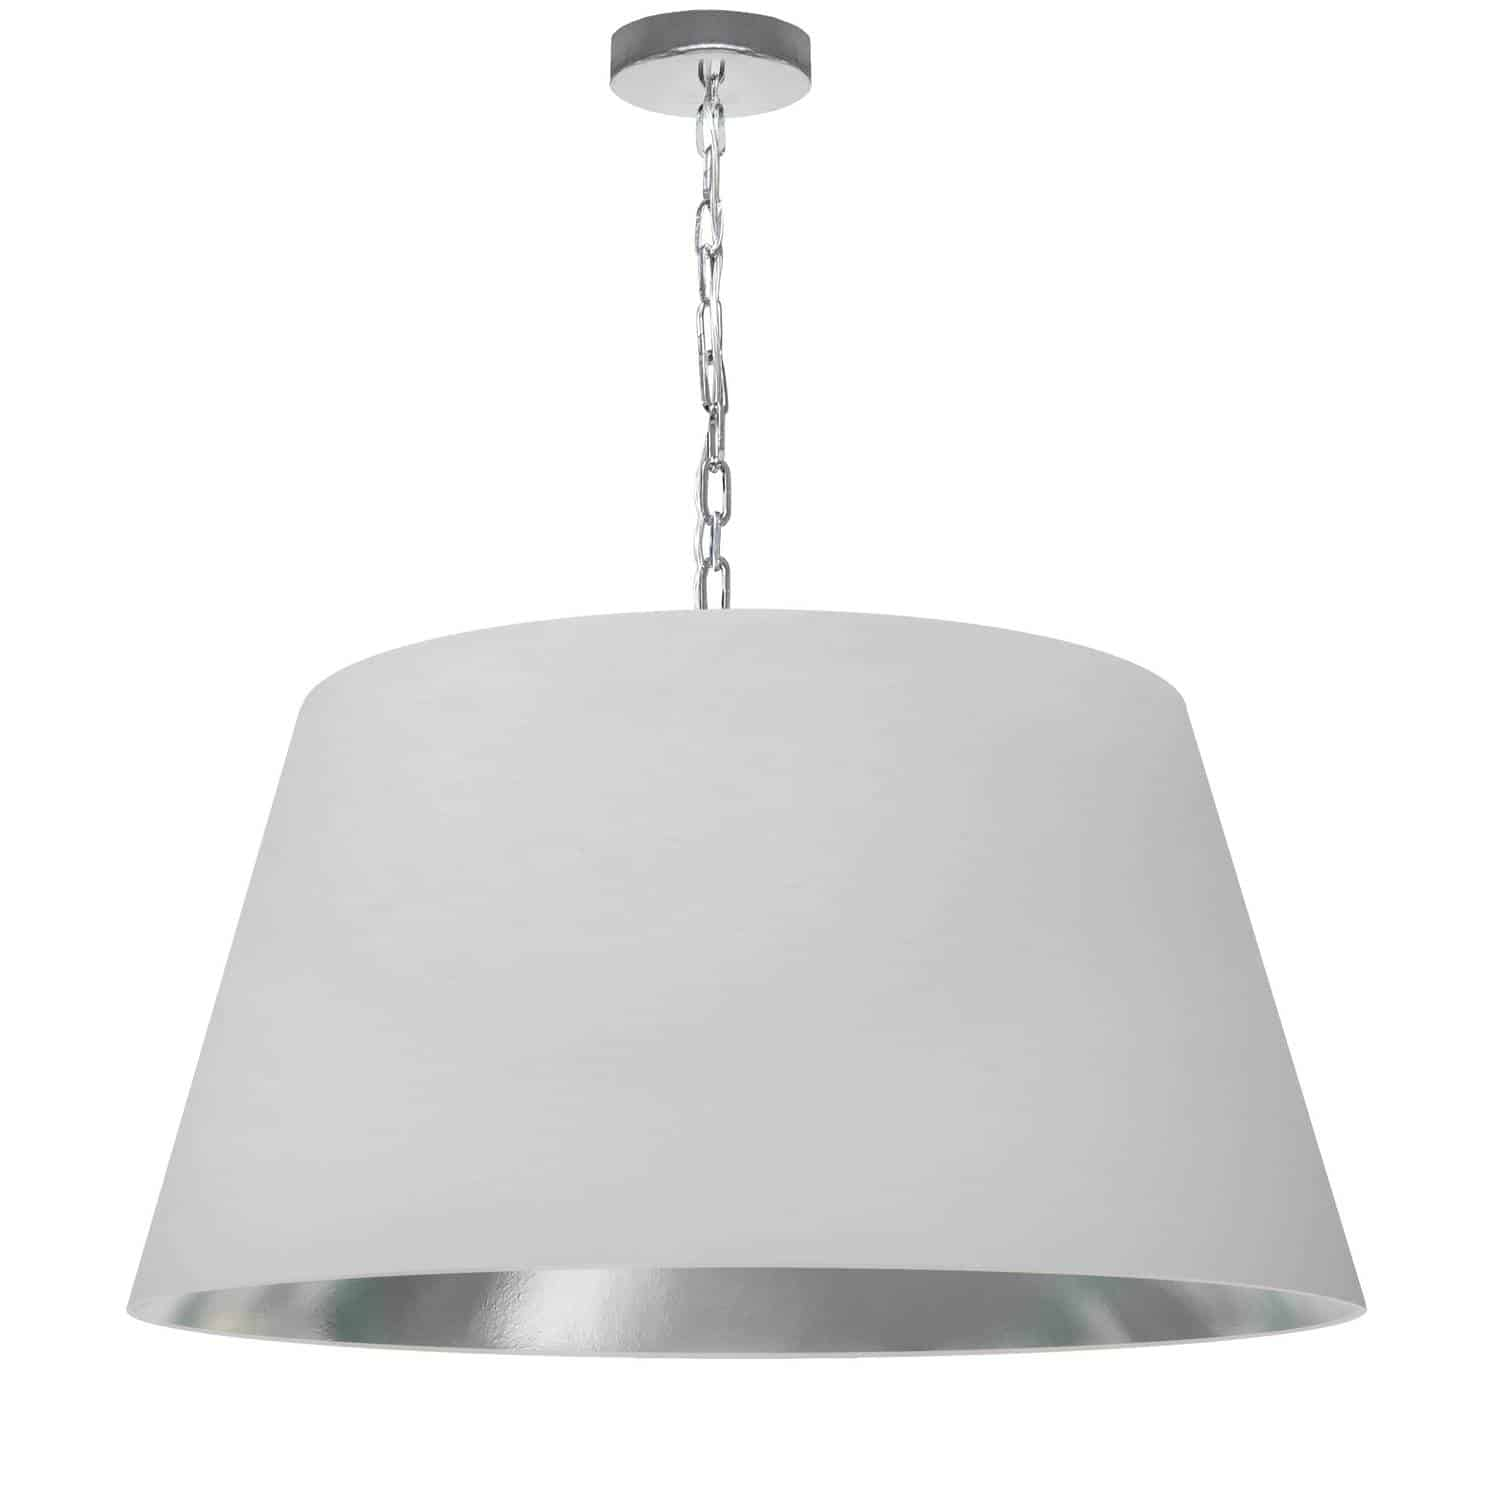 1 Light Brynn Large Pendant, White/Silver Shade, Polished Chrome